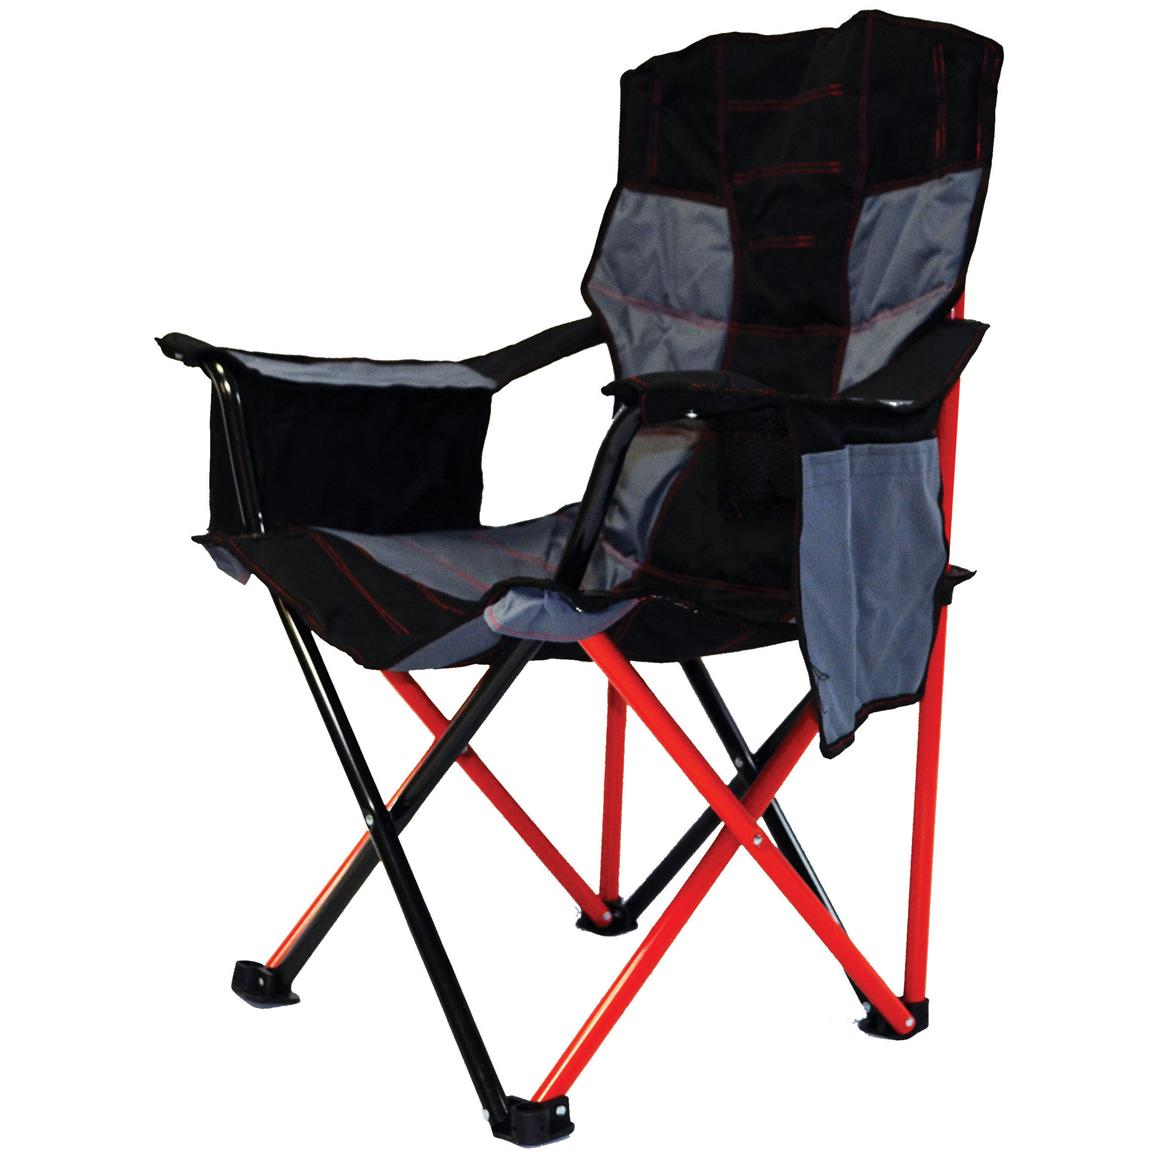 Campfire Chairs Alps Mountaineering Oversized Folding Camp Chair 91846